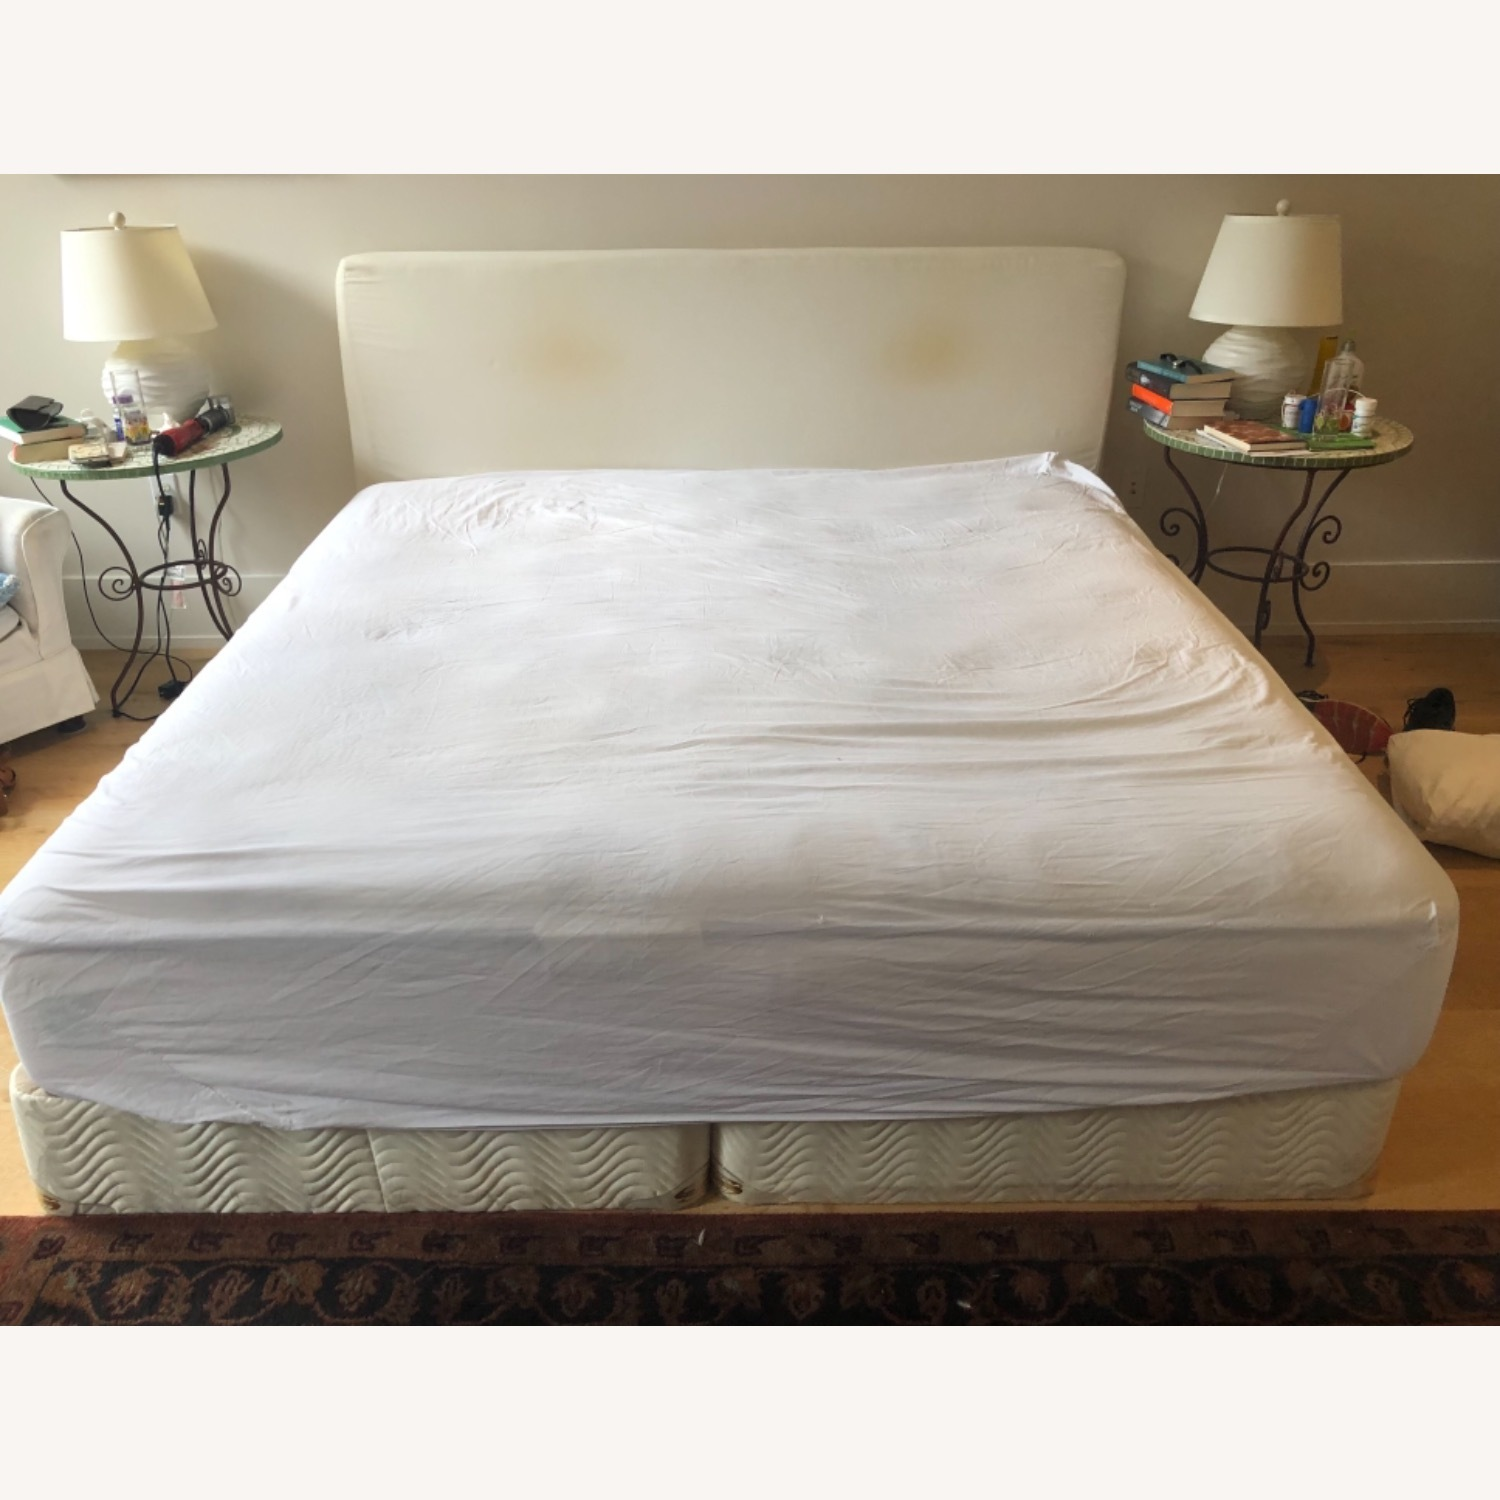 King Size Bed - image-1